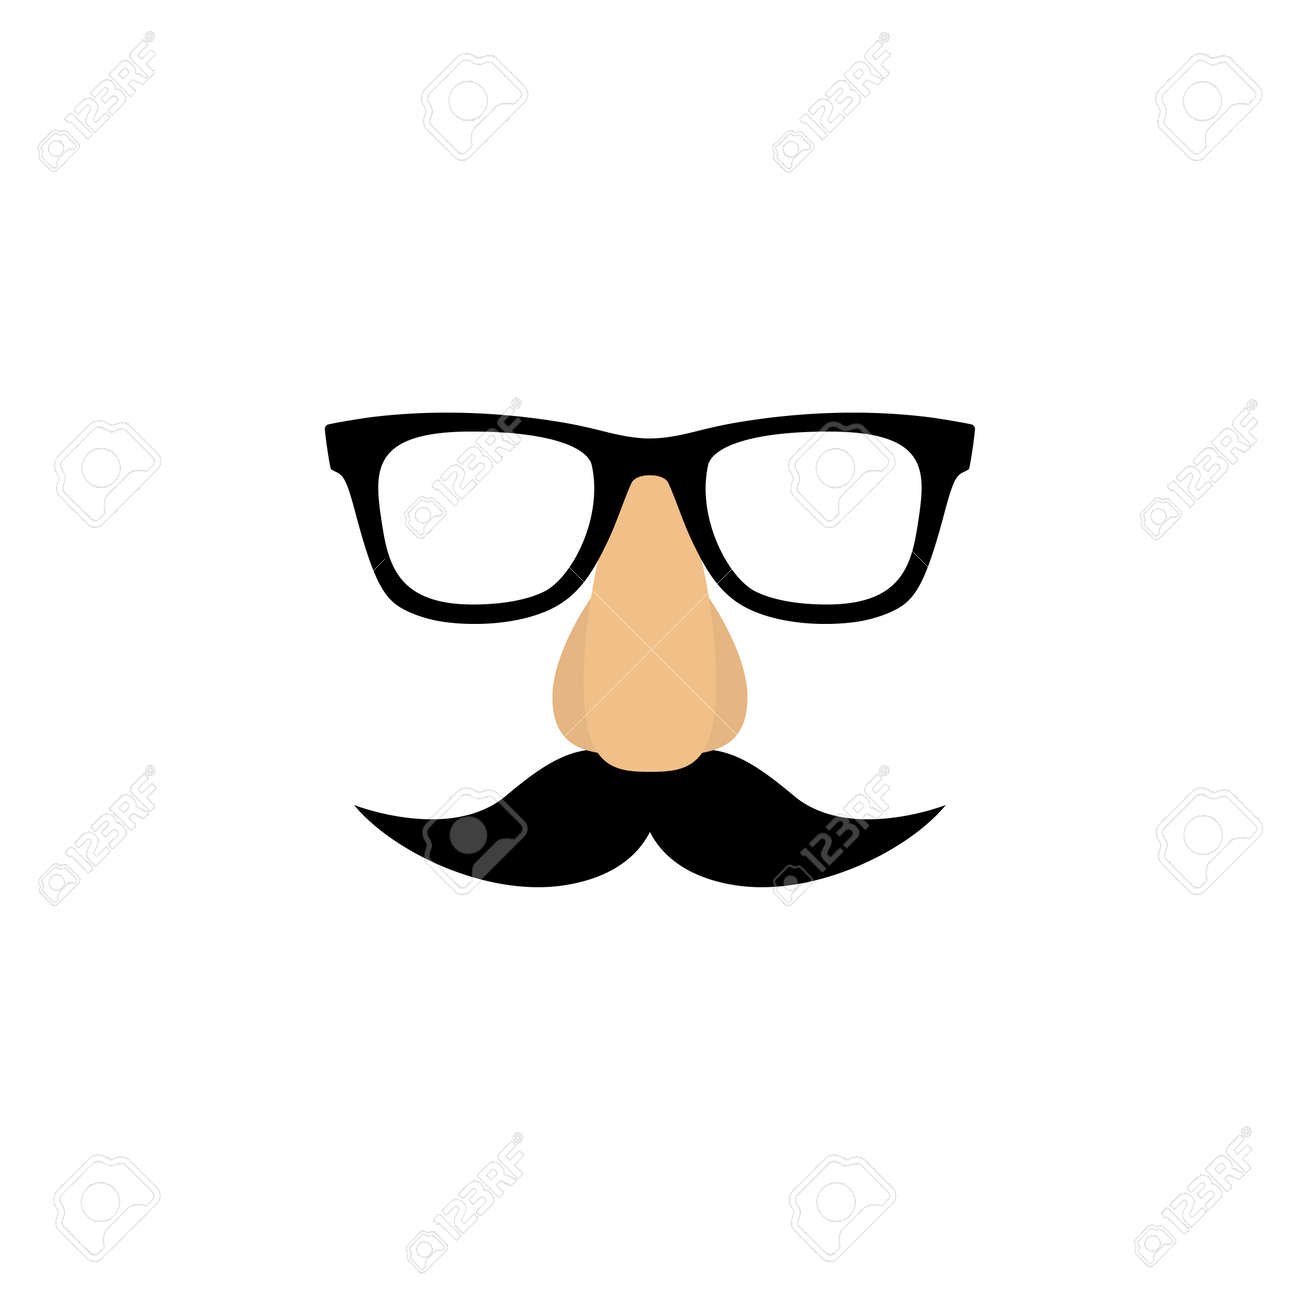 5bed4d79c3f Mask With Glasses Fake Nose And Mustache. Royalty Free Cliparts ...